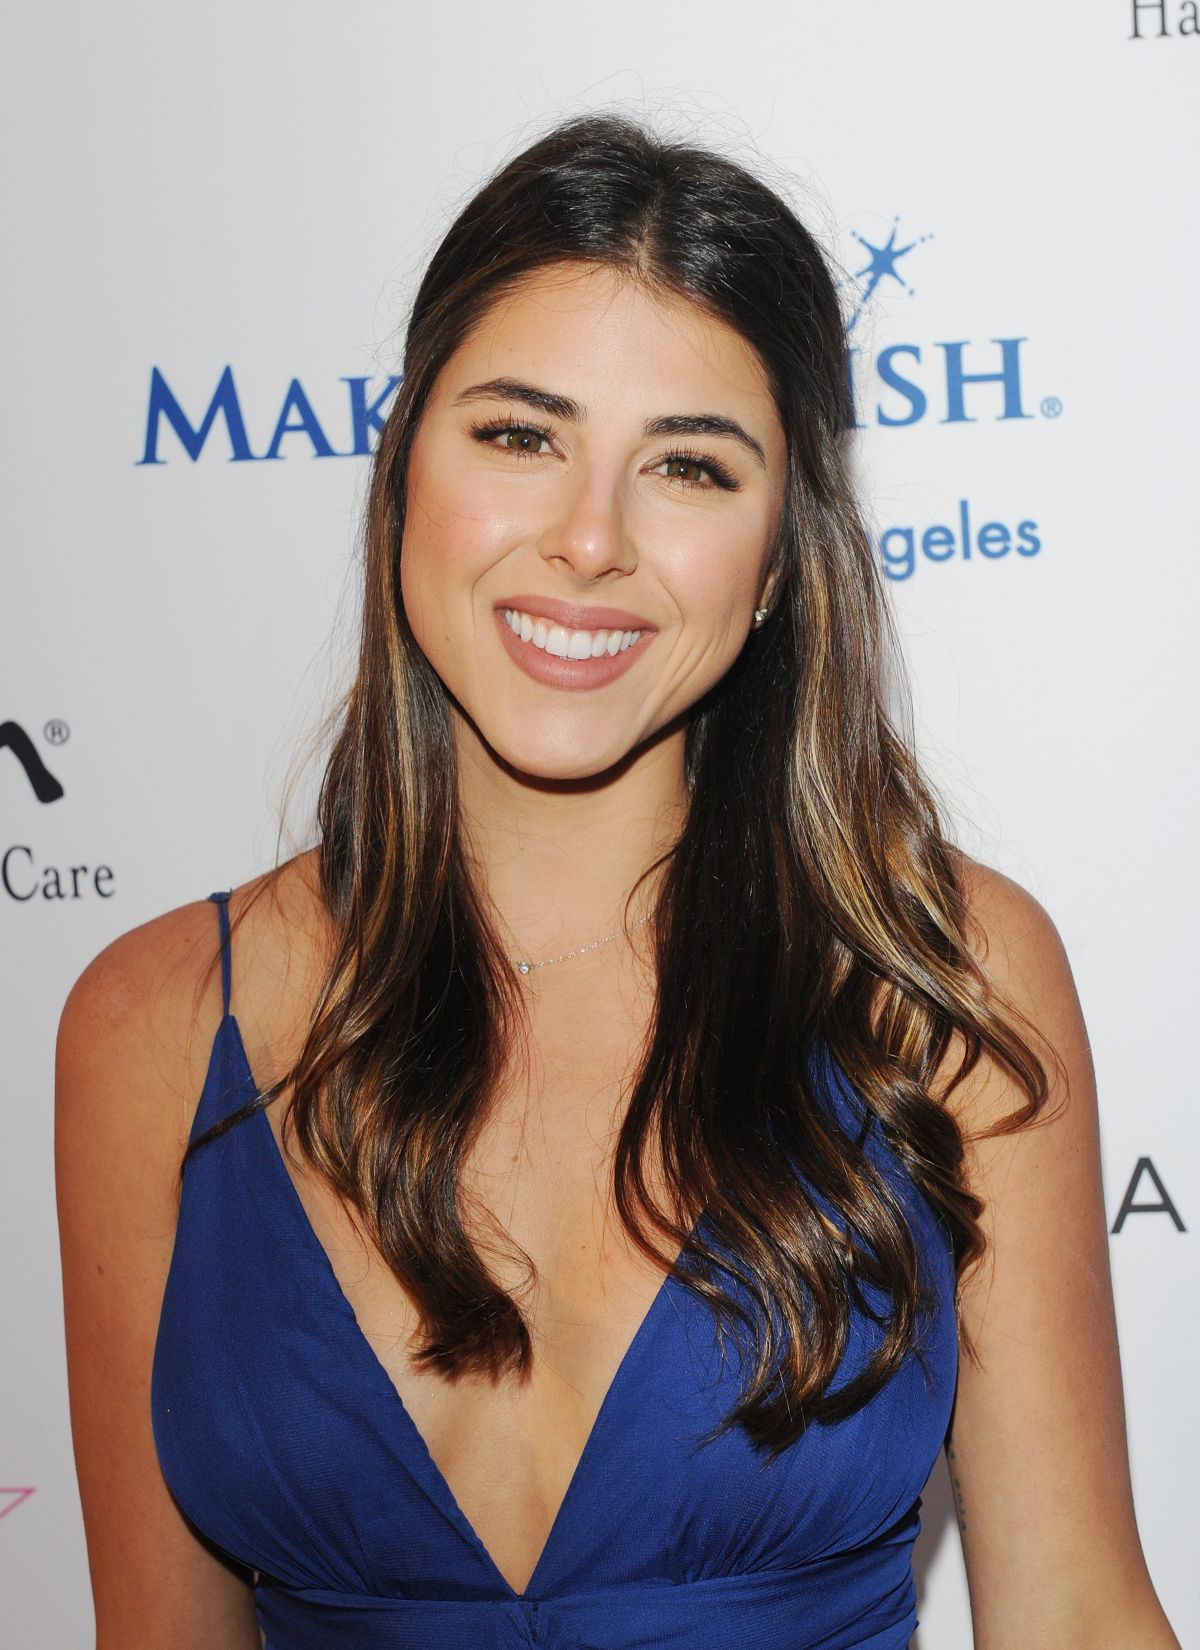 DANIELLA MONET at Make A Wish Greater Los Angeles Fashion Fundraiser in Hollywood 08/24/2016